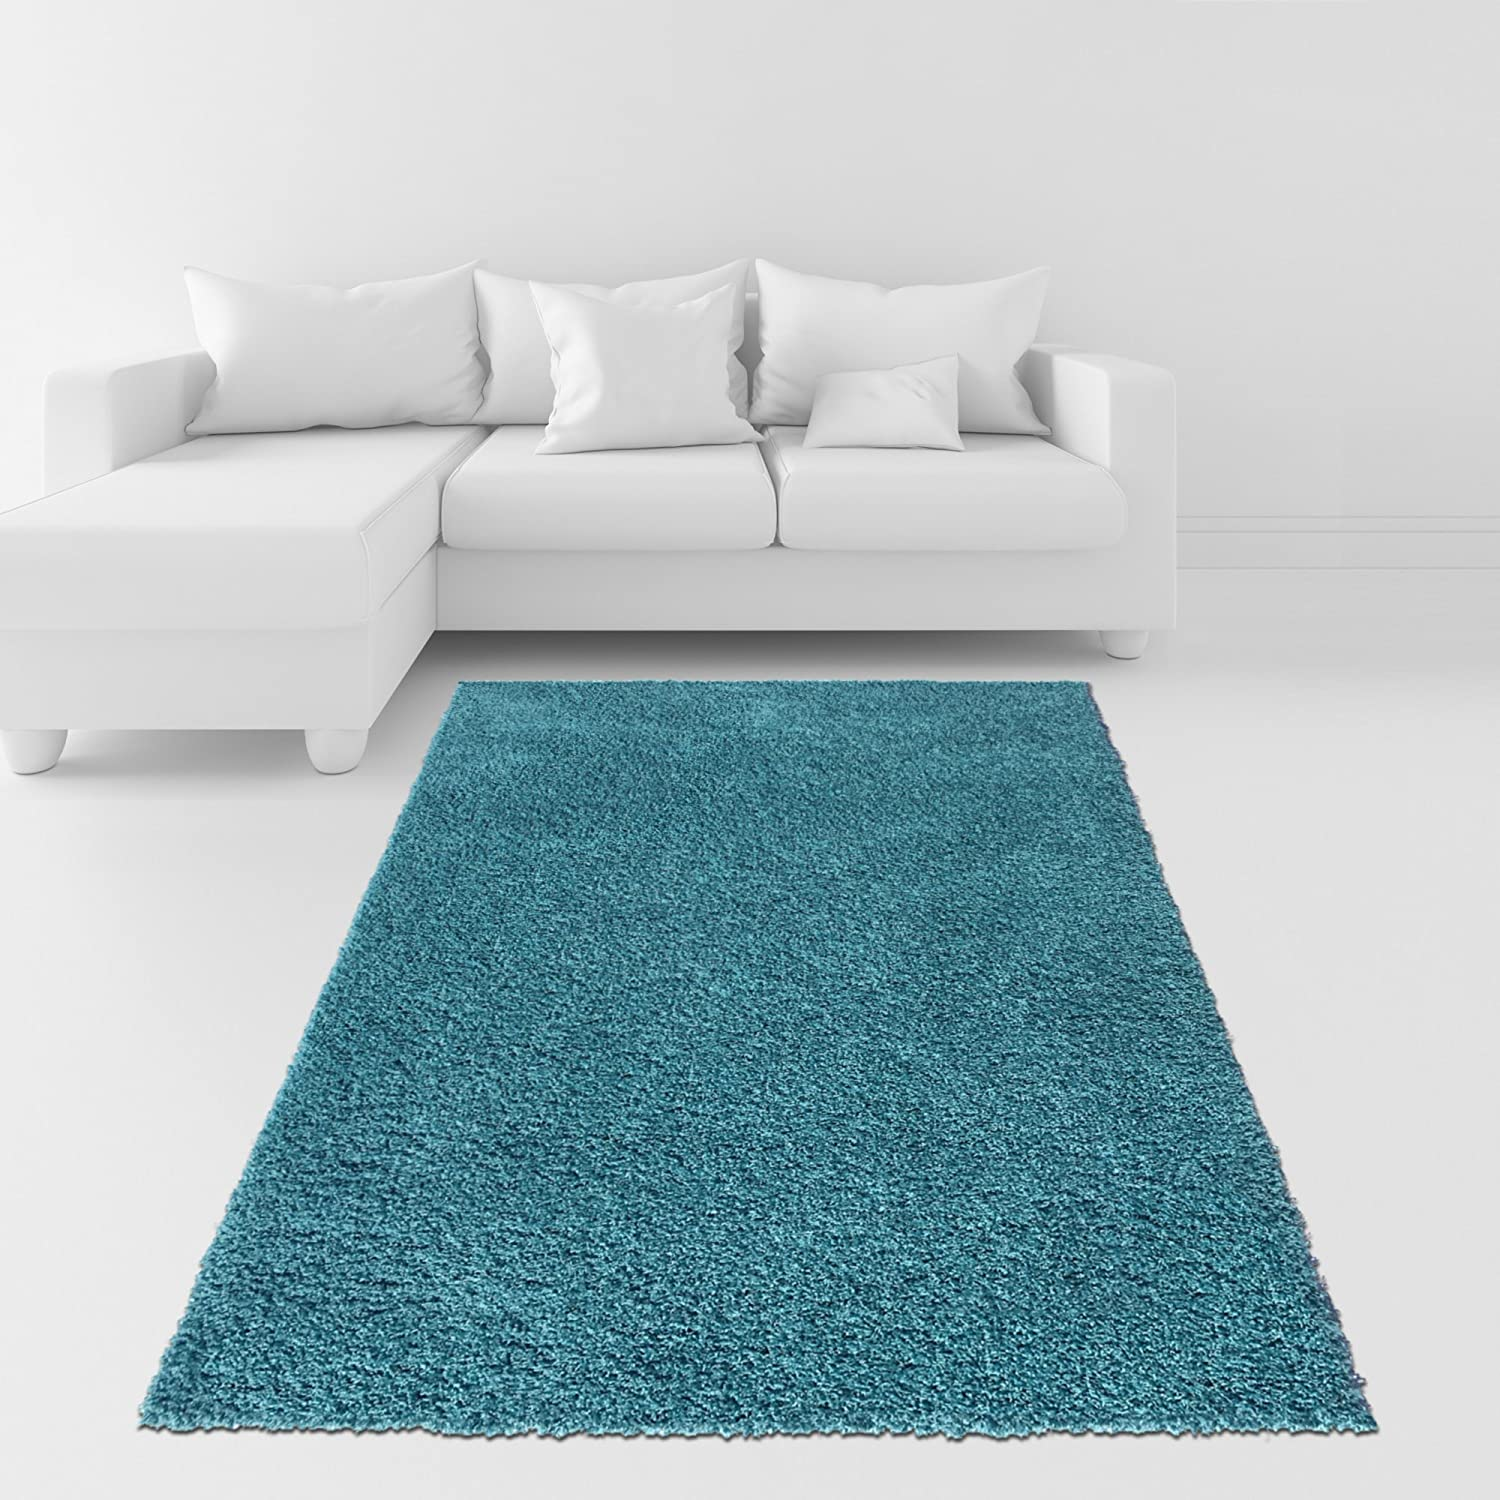 Amazon com  Soft Shag Area Rug 5x7 Plain Solid Color TURQUOISE BLUE    Contemporary Area Rugs for Living Room Bedroom Kitchen Decorative Modern  Shaggy Rugs. Amazon com  Soft Shag Area Rug 5x7 Plain Solid Color TURQUOISE